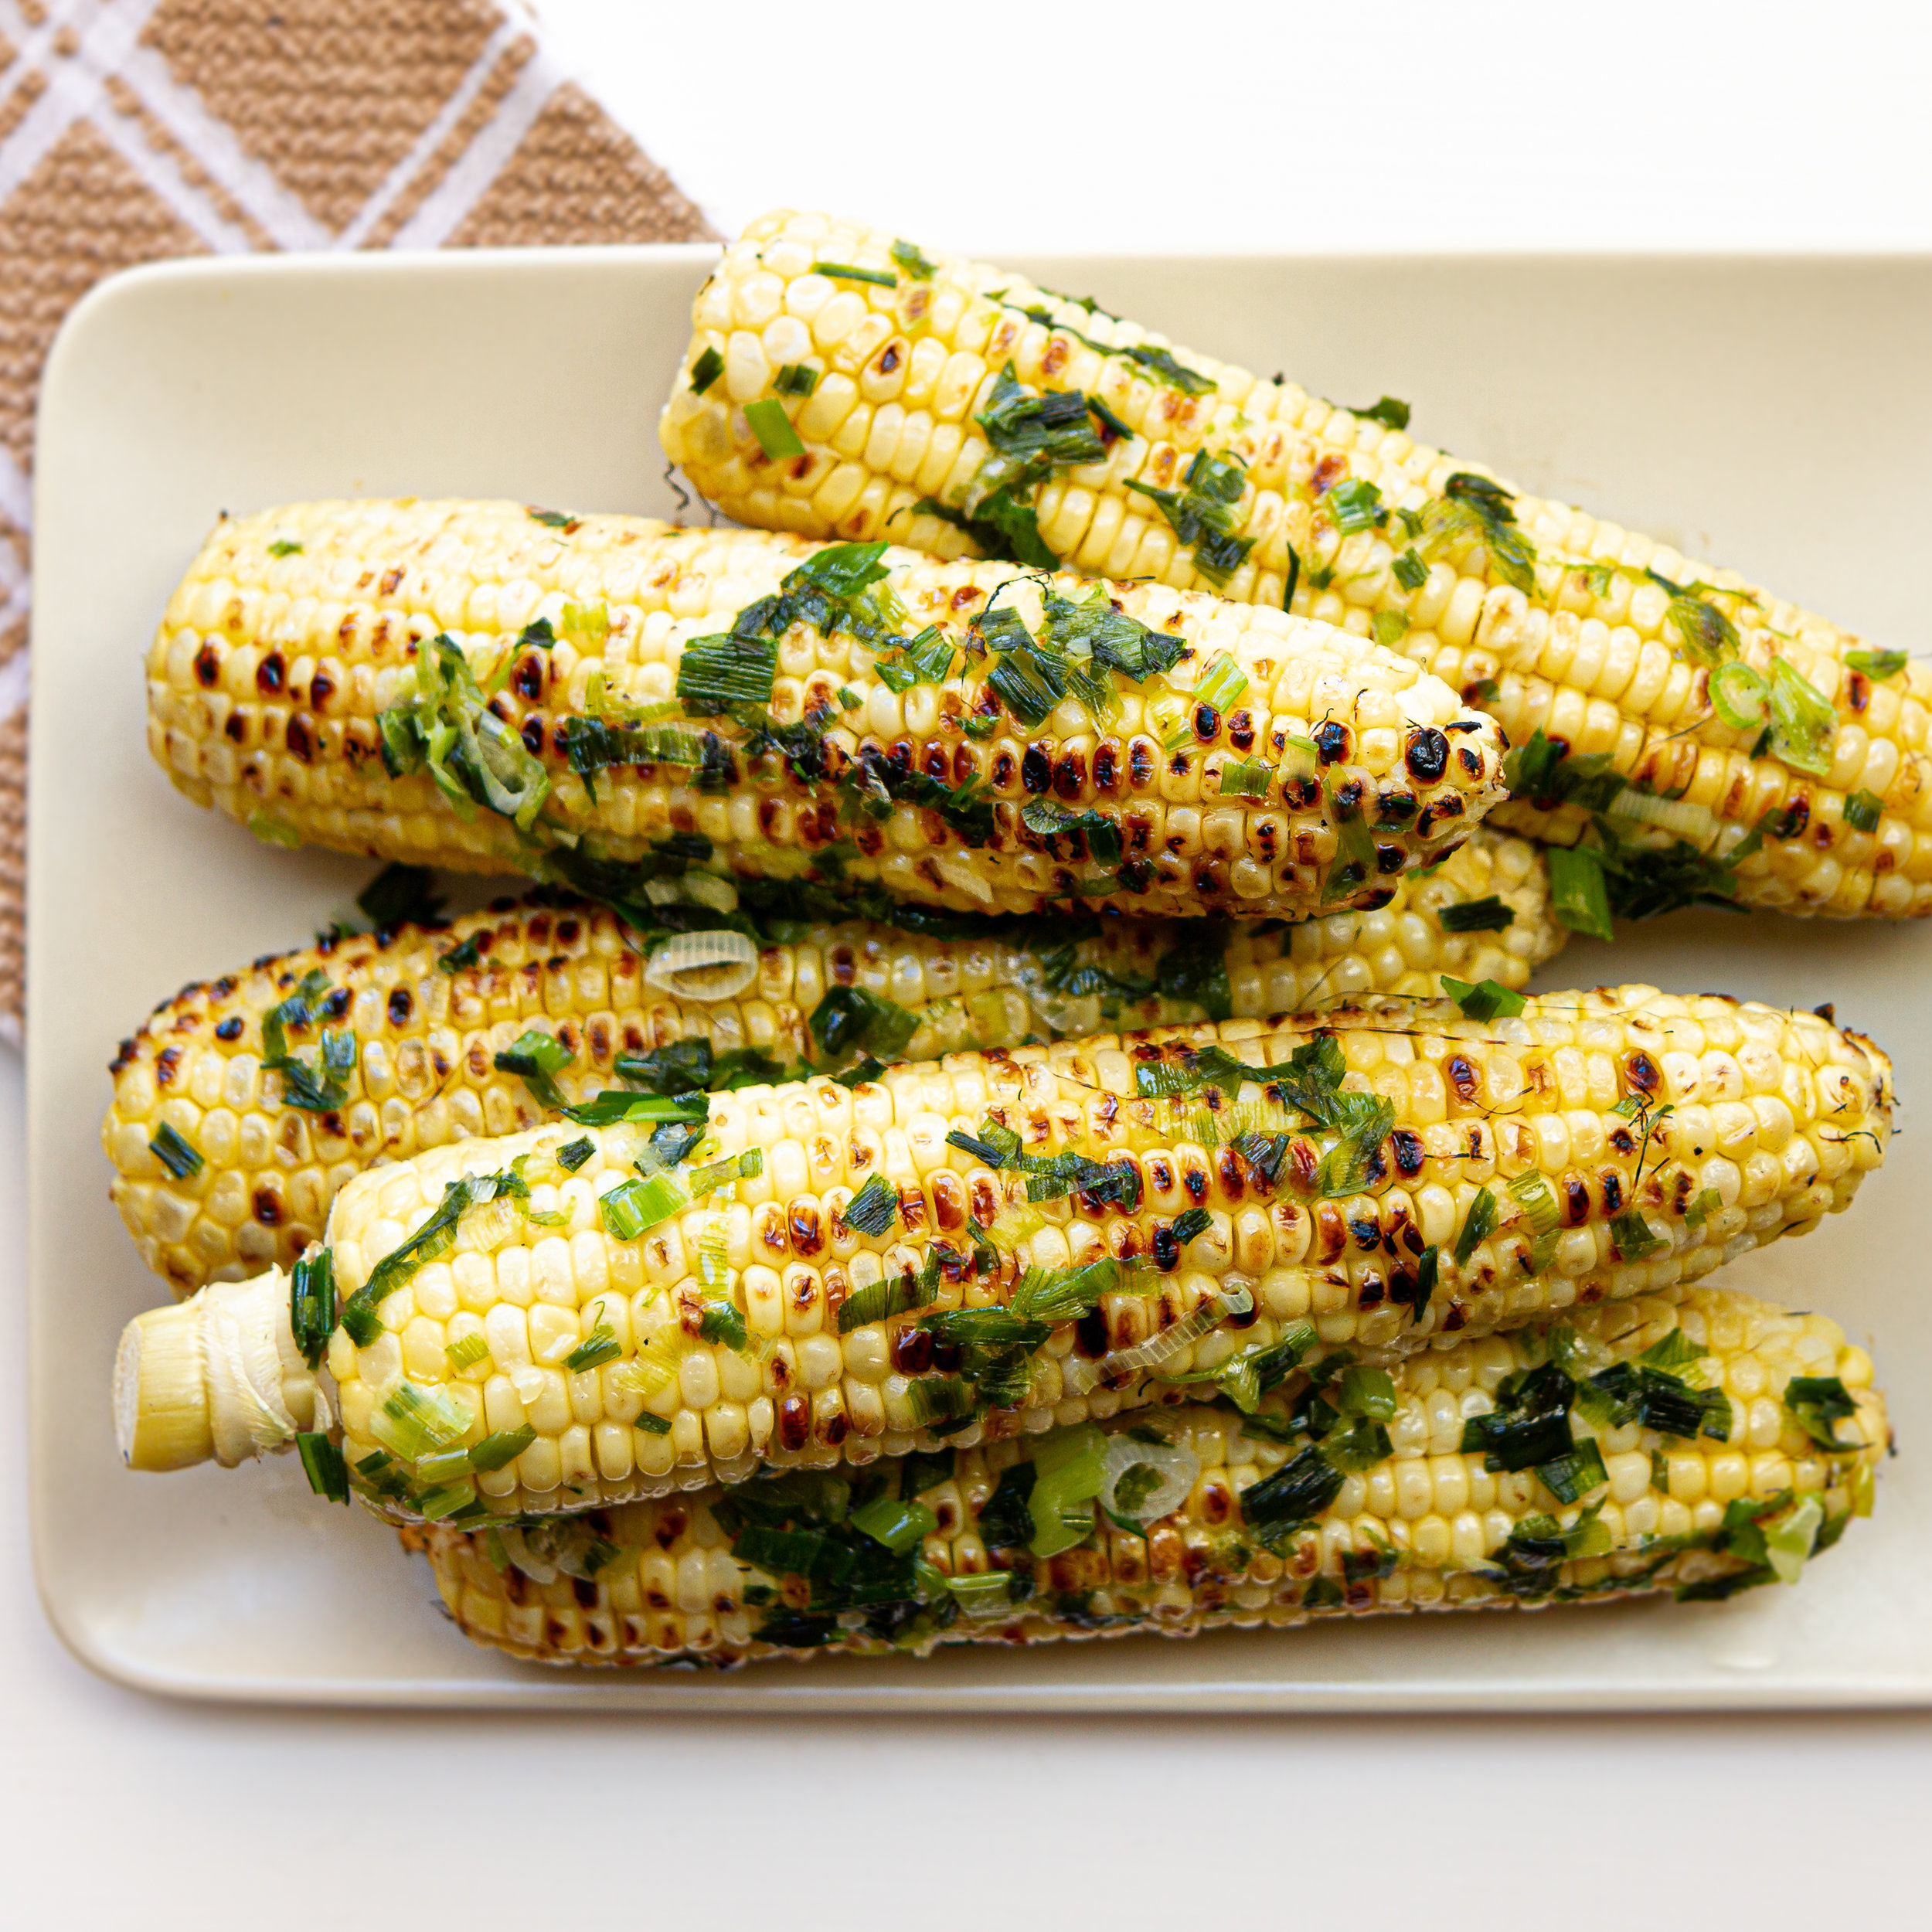 Grilled Corn with Scallion Oil (Bap Nuong Mo Hanh)